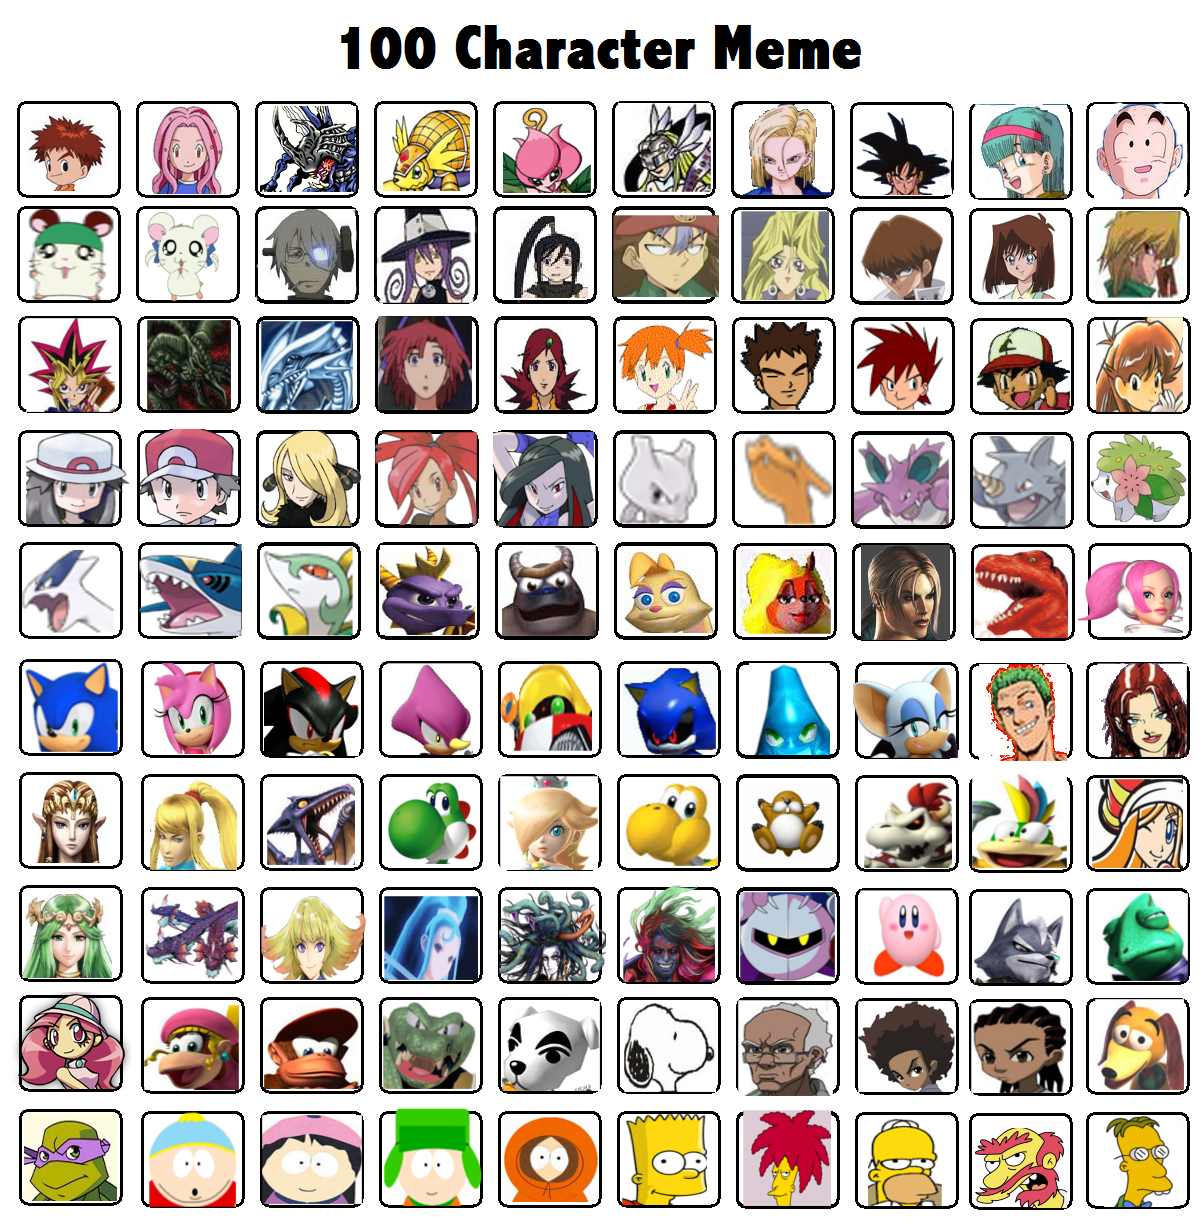 My Top 100 Characters Over All Meme By Whosaskin On Deviantart